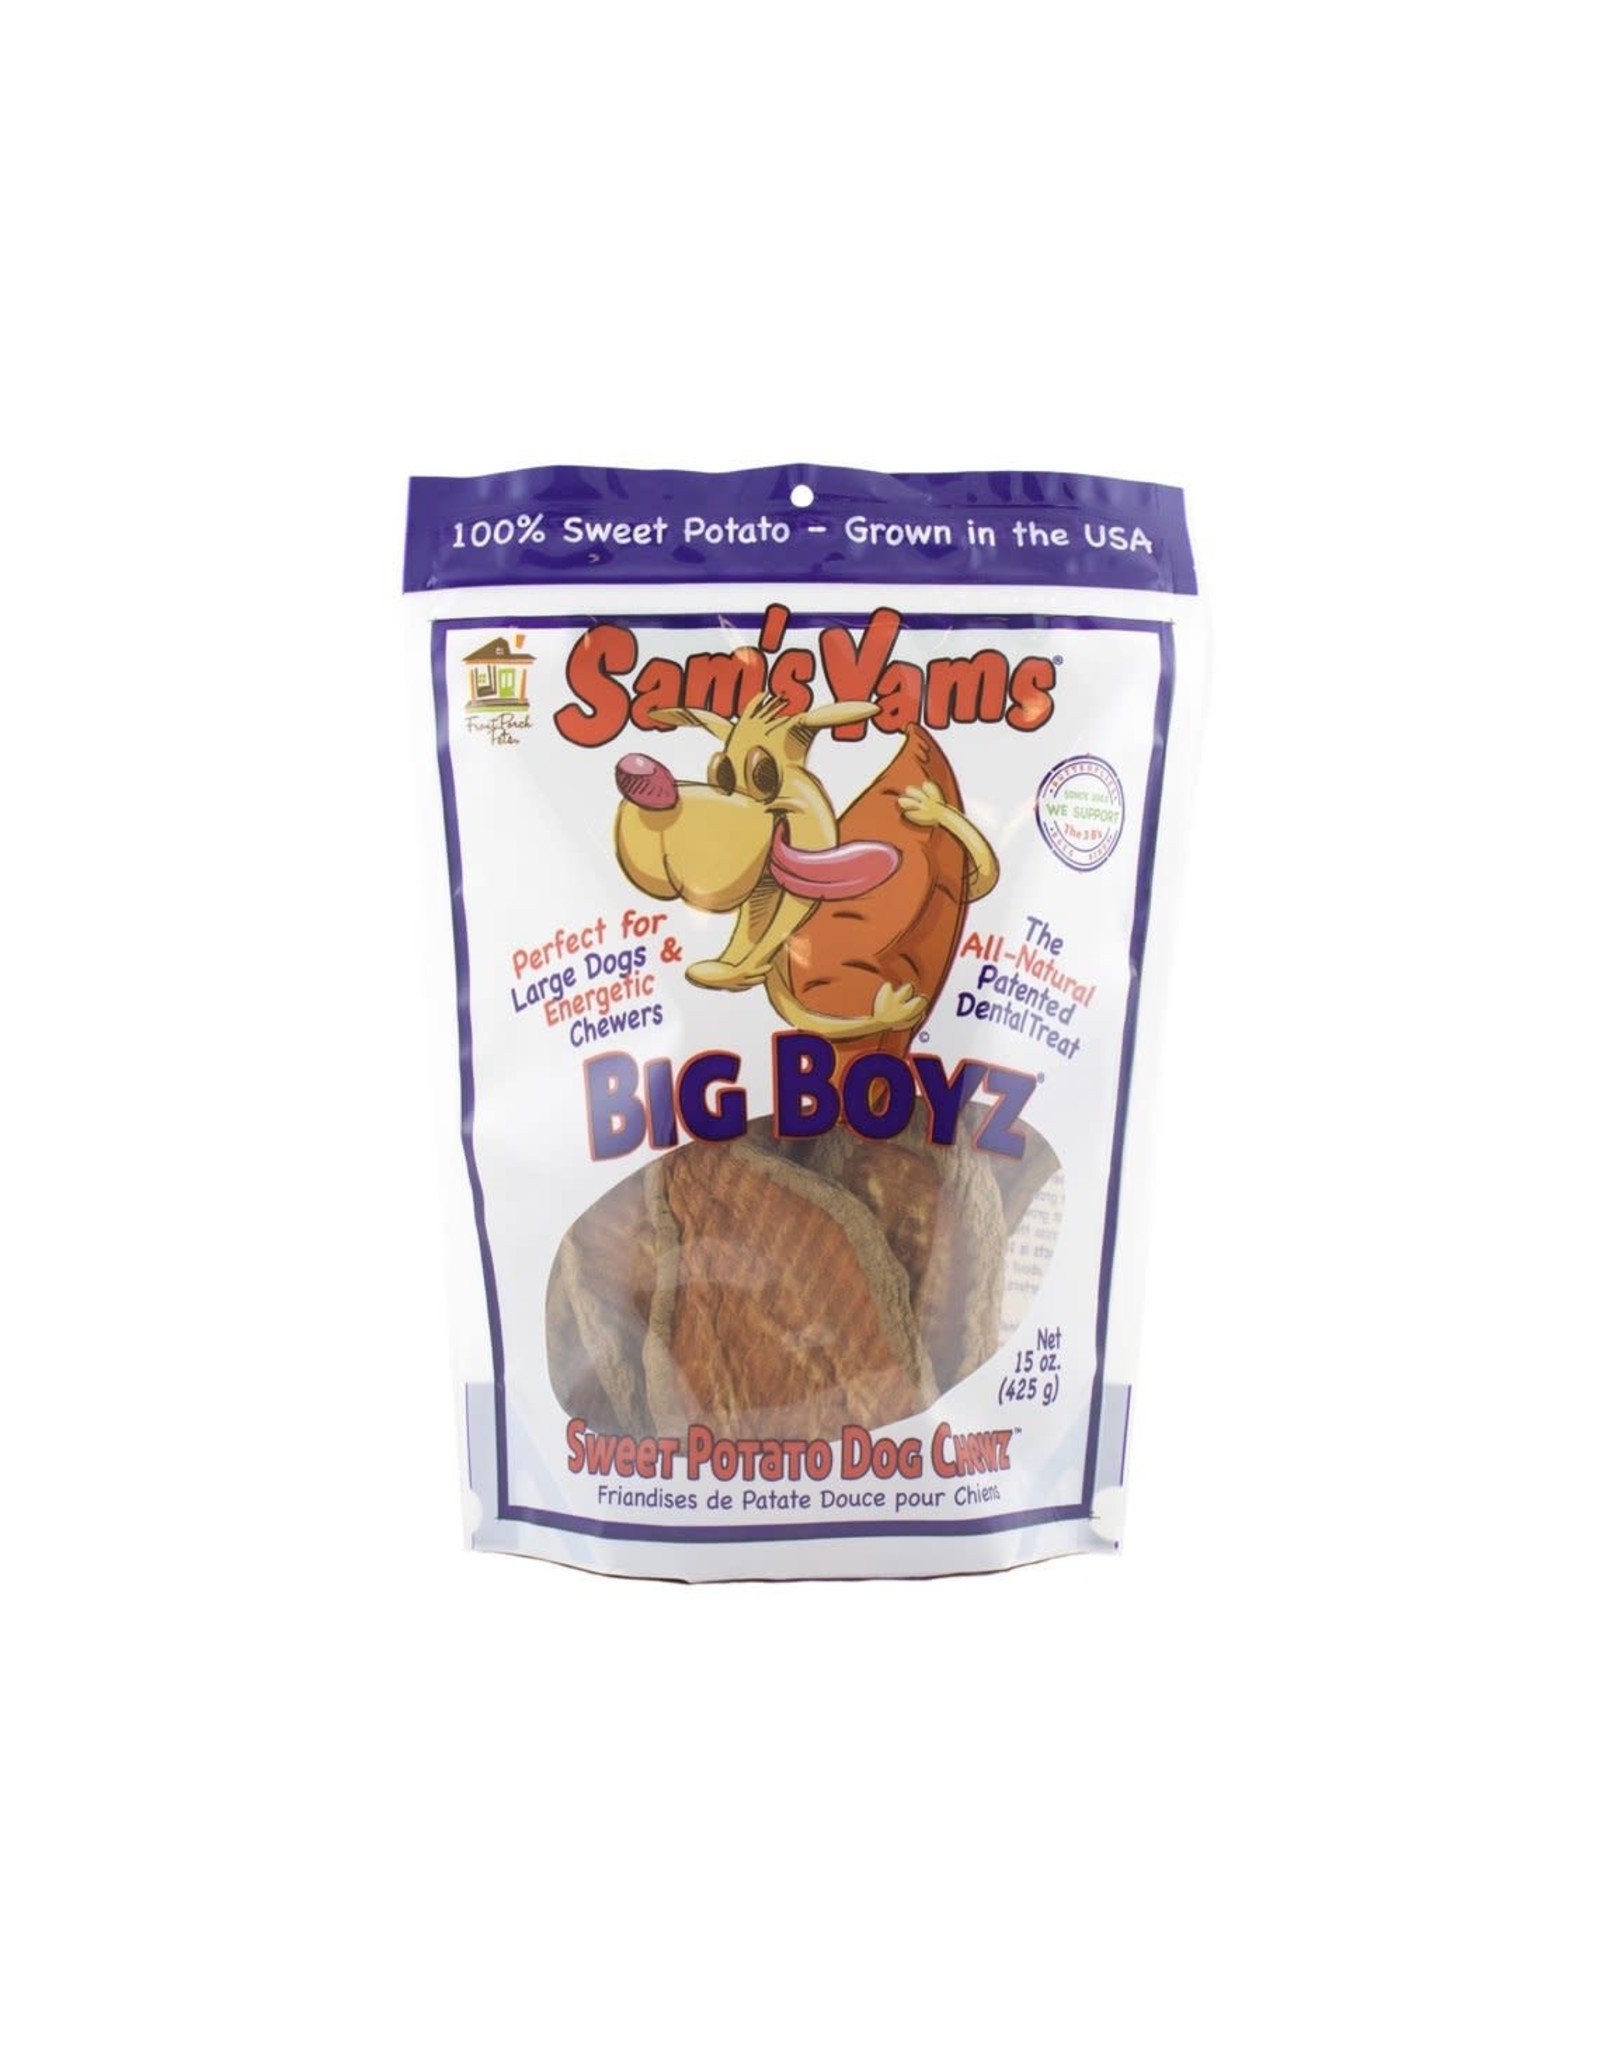 Front Porch Pets SAM'S YAMS BIG BOYZ SWEET POTATO DOG CHEWZ 15OZ